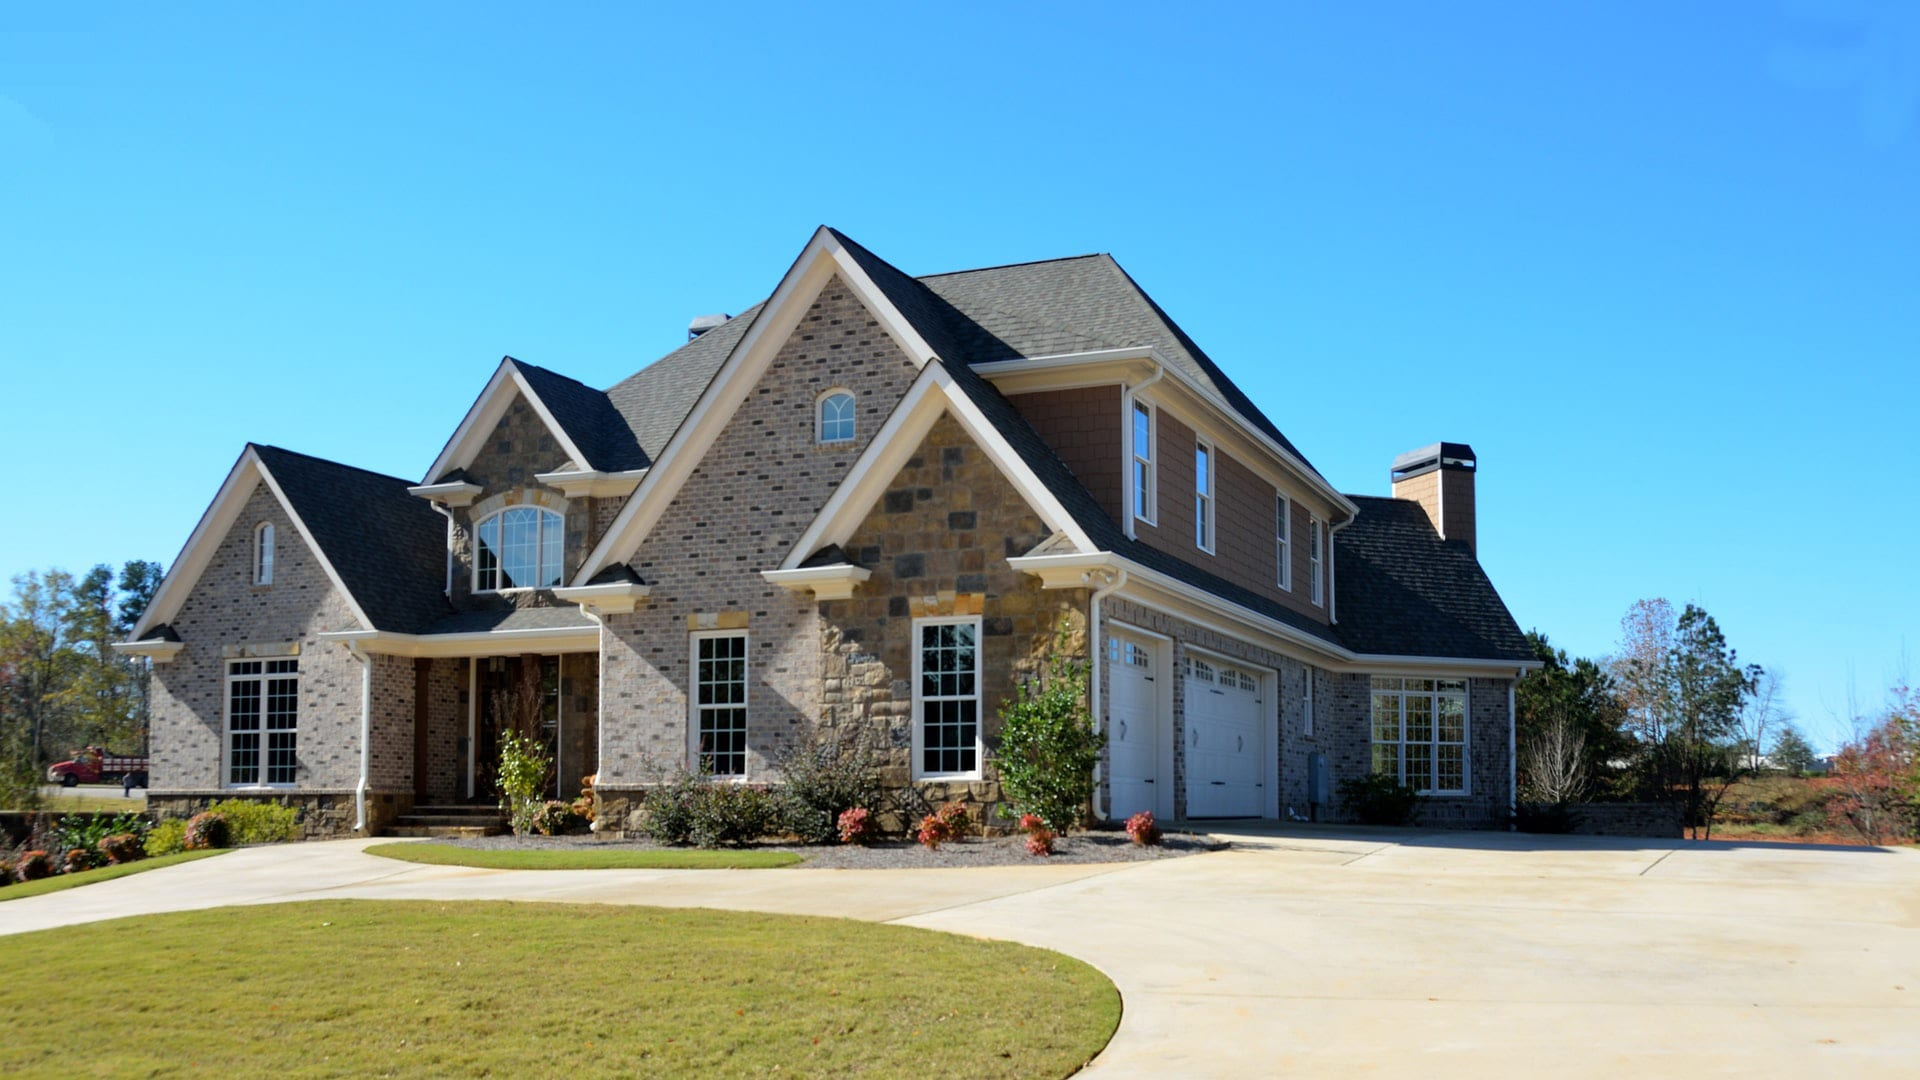 FHA vs Conventional: Which Low-Down-Payment Loan is Best?